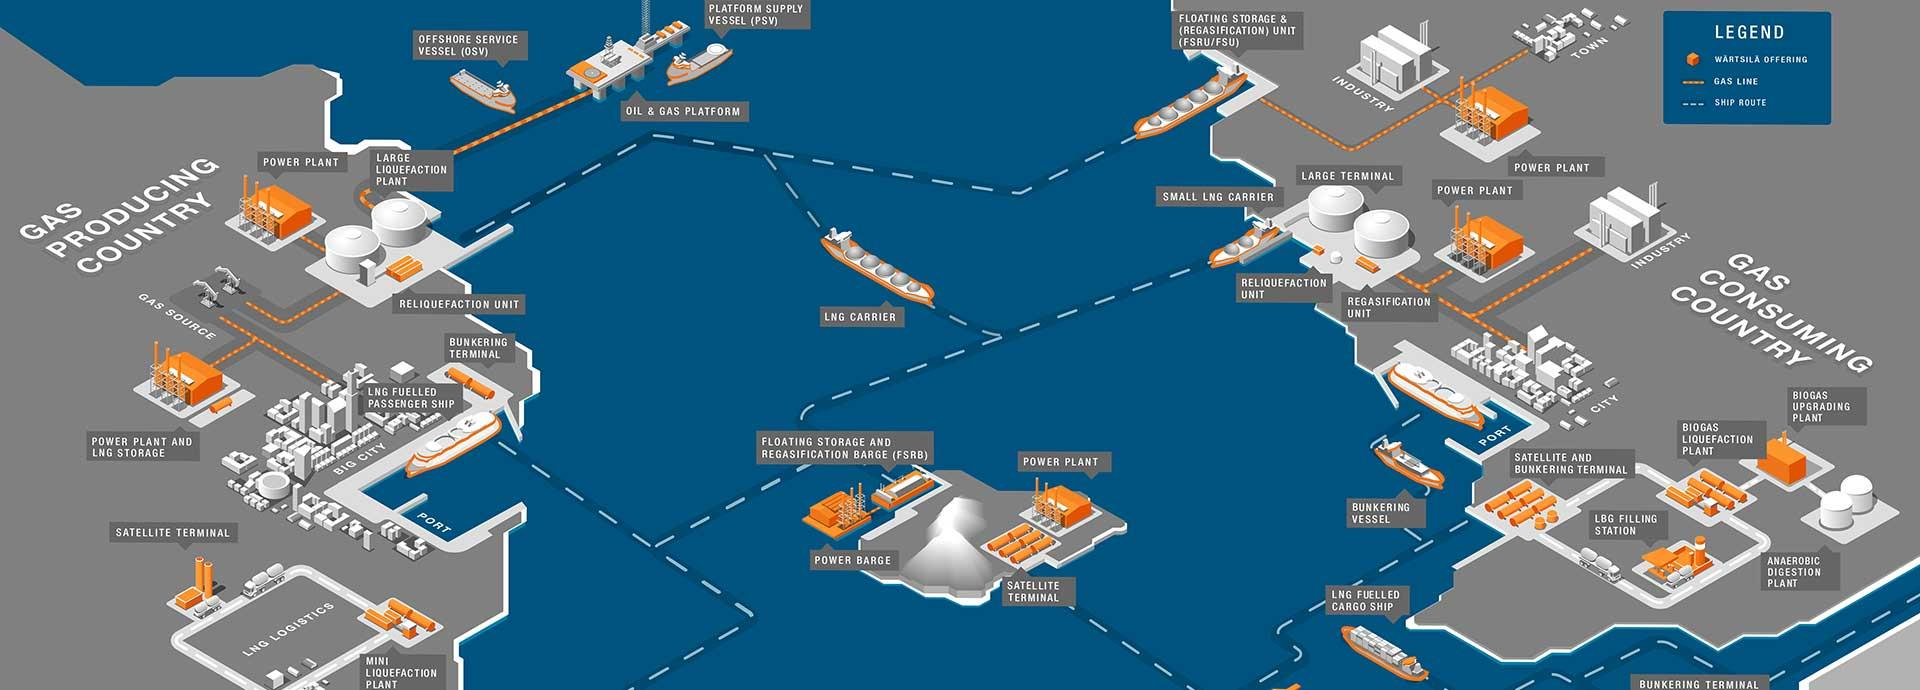 LNG terminals land-based vs. floating storage and regasification technology